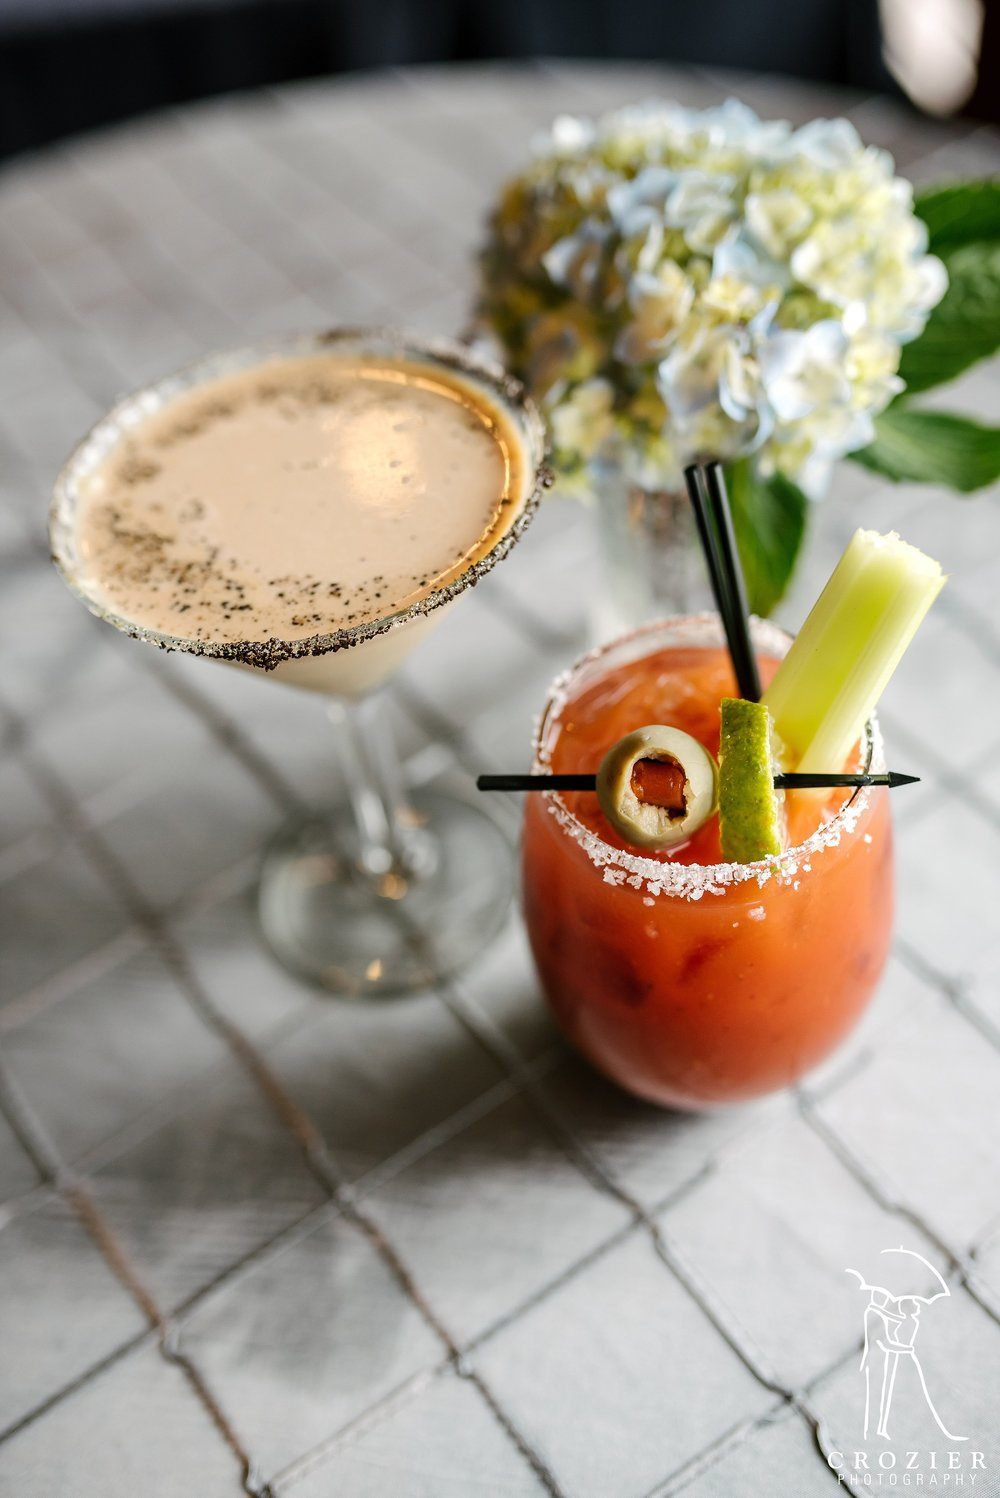 The perfect brunch wedding drinks. Photo by  Crozier Photography